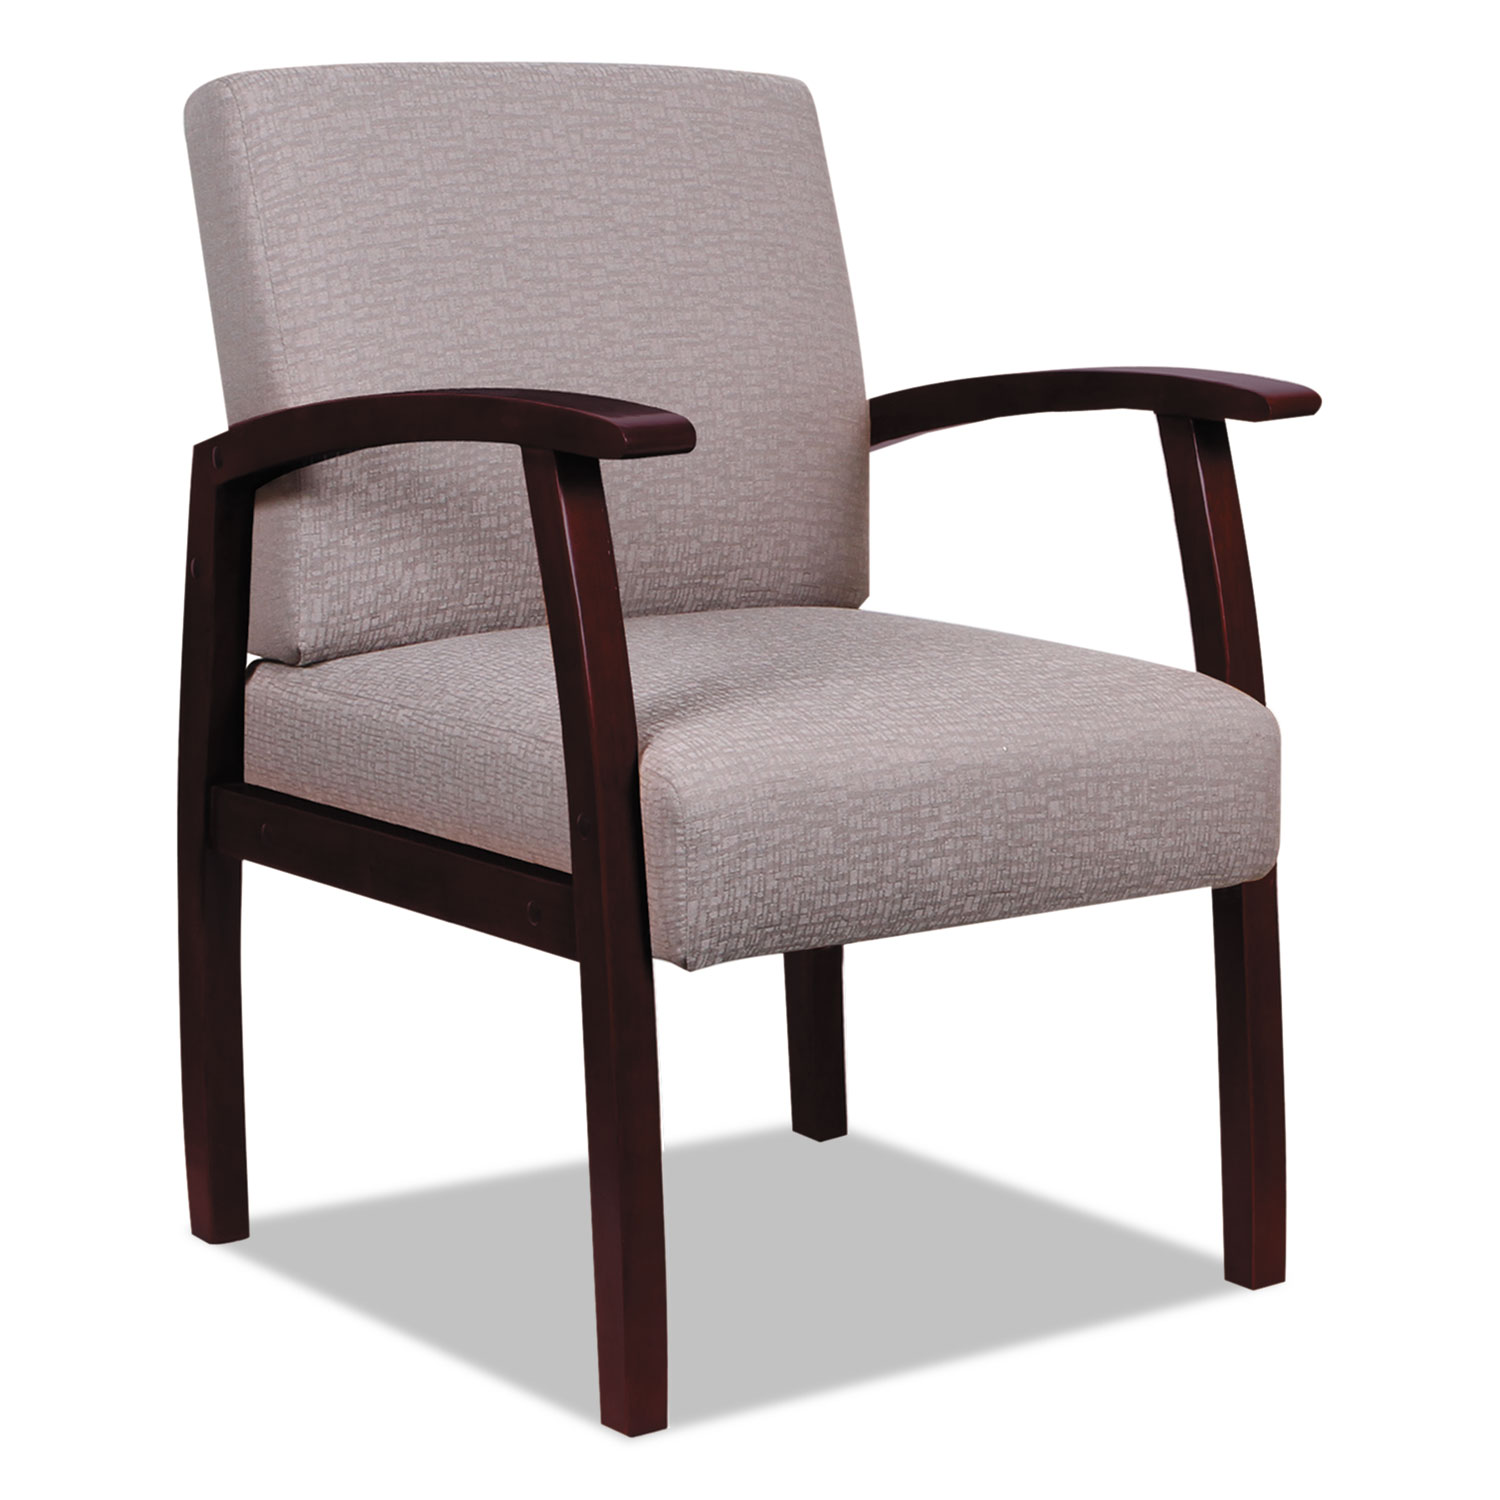 Alera Chair Alera Reception Lounge 700 Series Guest Chair By Alera